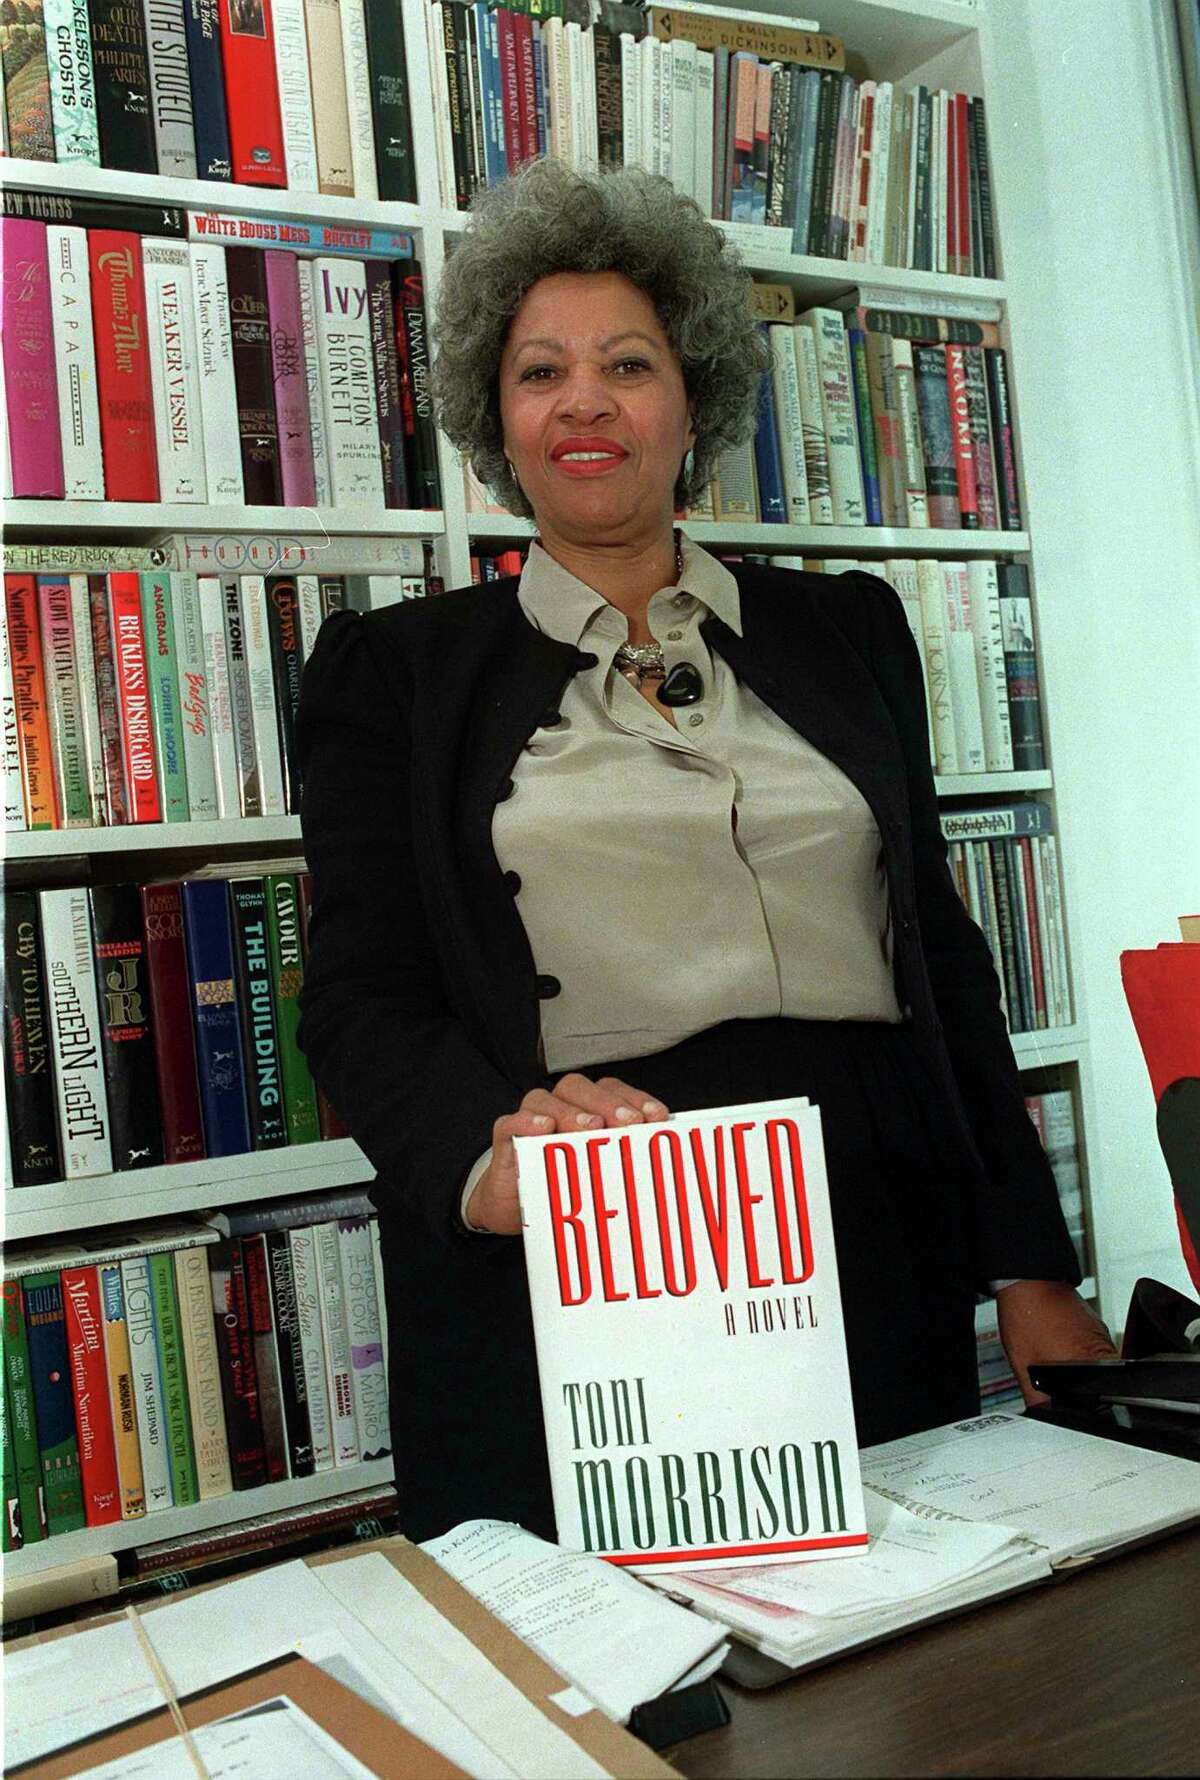 FILE - In this Sept. 1987 file photo, author Toni Morrison poses with a copy of her book